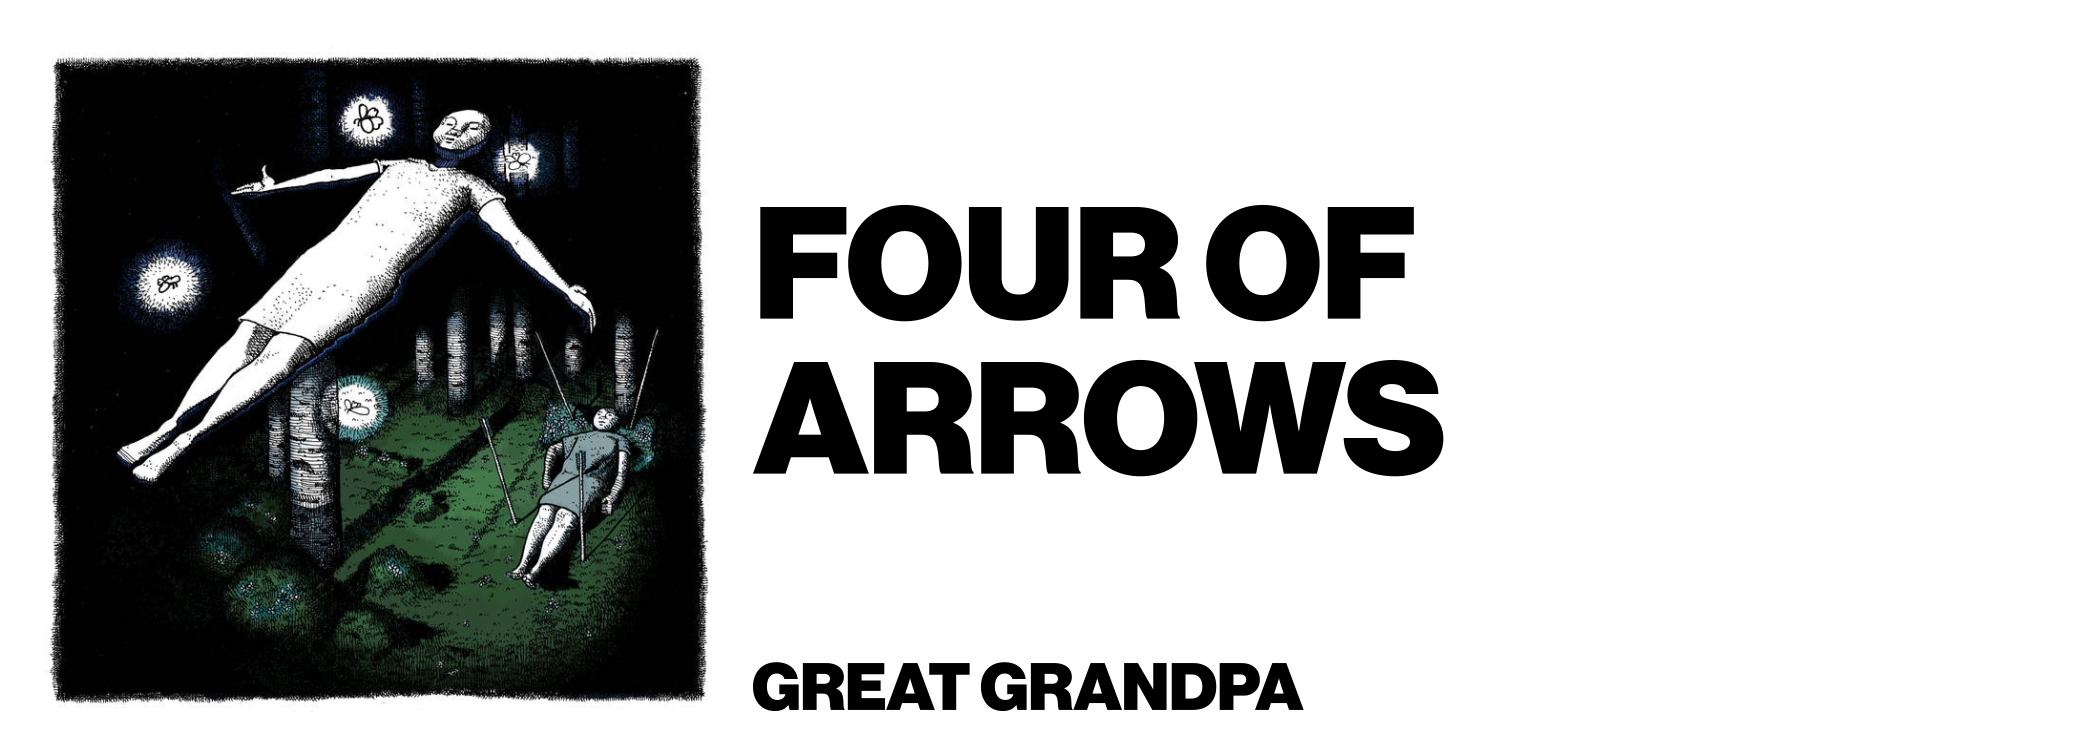 1576878302087-Great-Grandpa-Four-of-Arrows